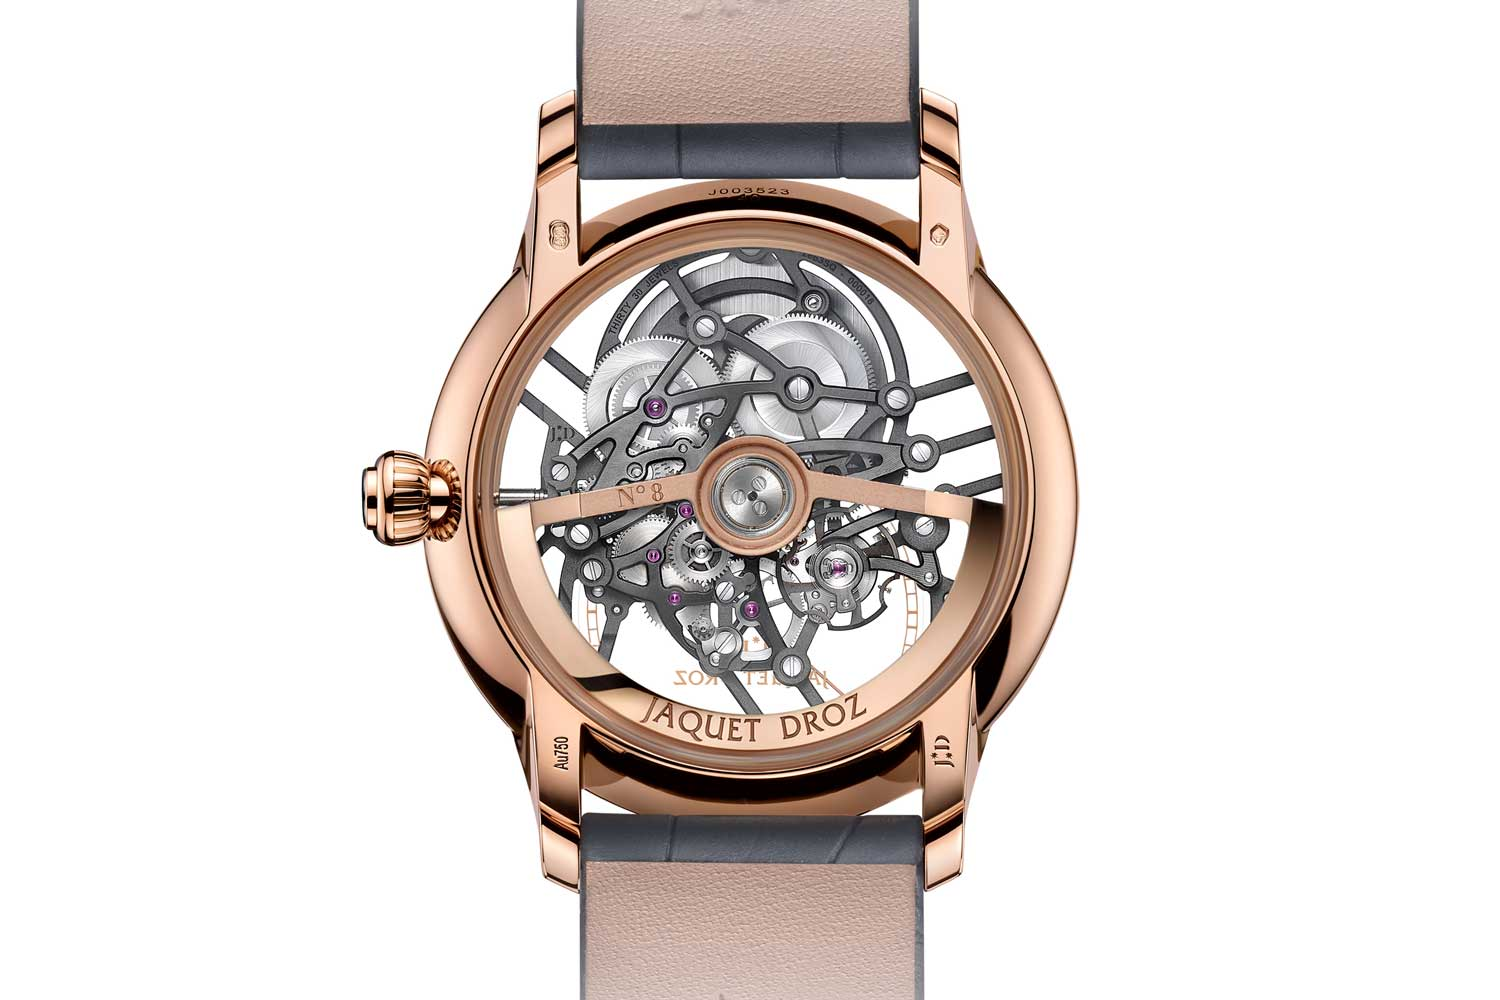 The the Jaquet Droz 2663 SQ self-winding mechanical movement seen through the caseback of the Seconde Skelet-One in red gold (41mm)